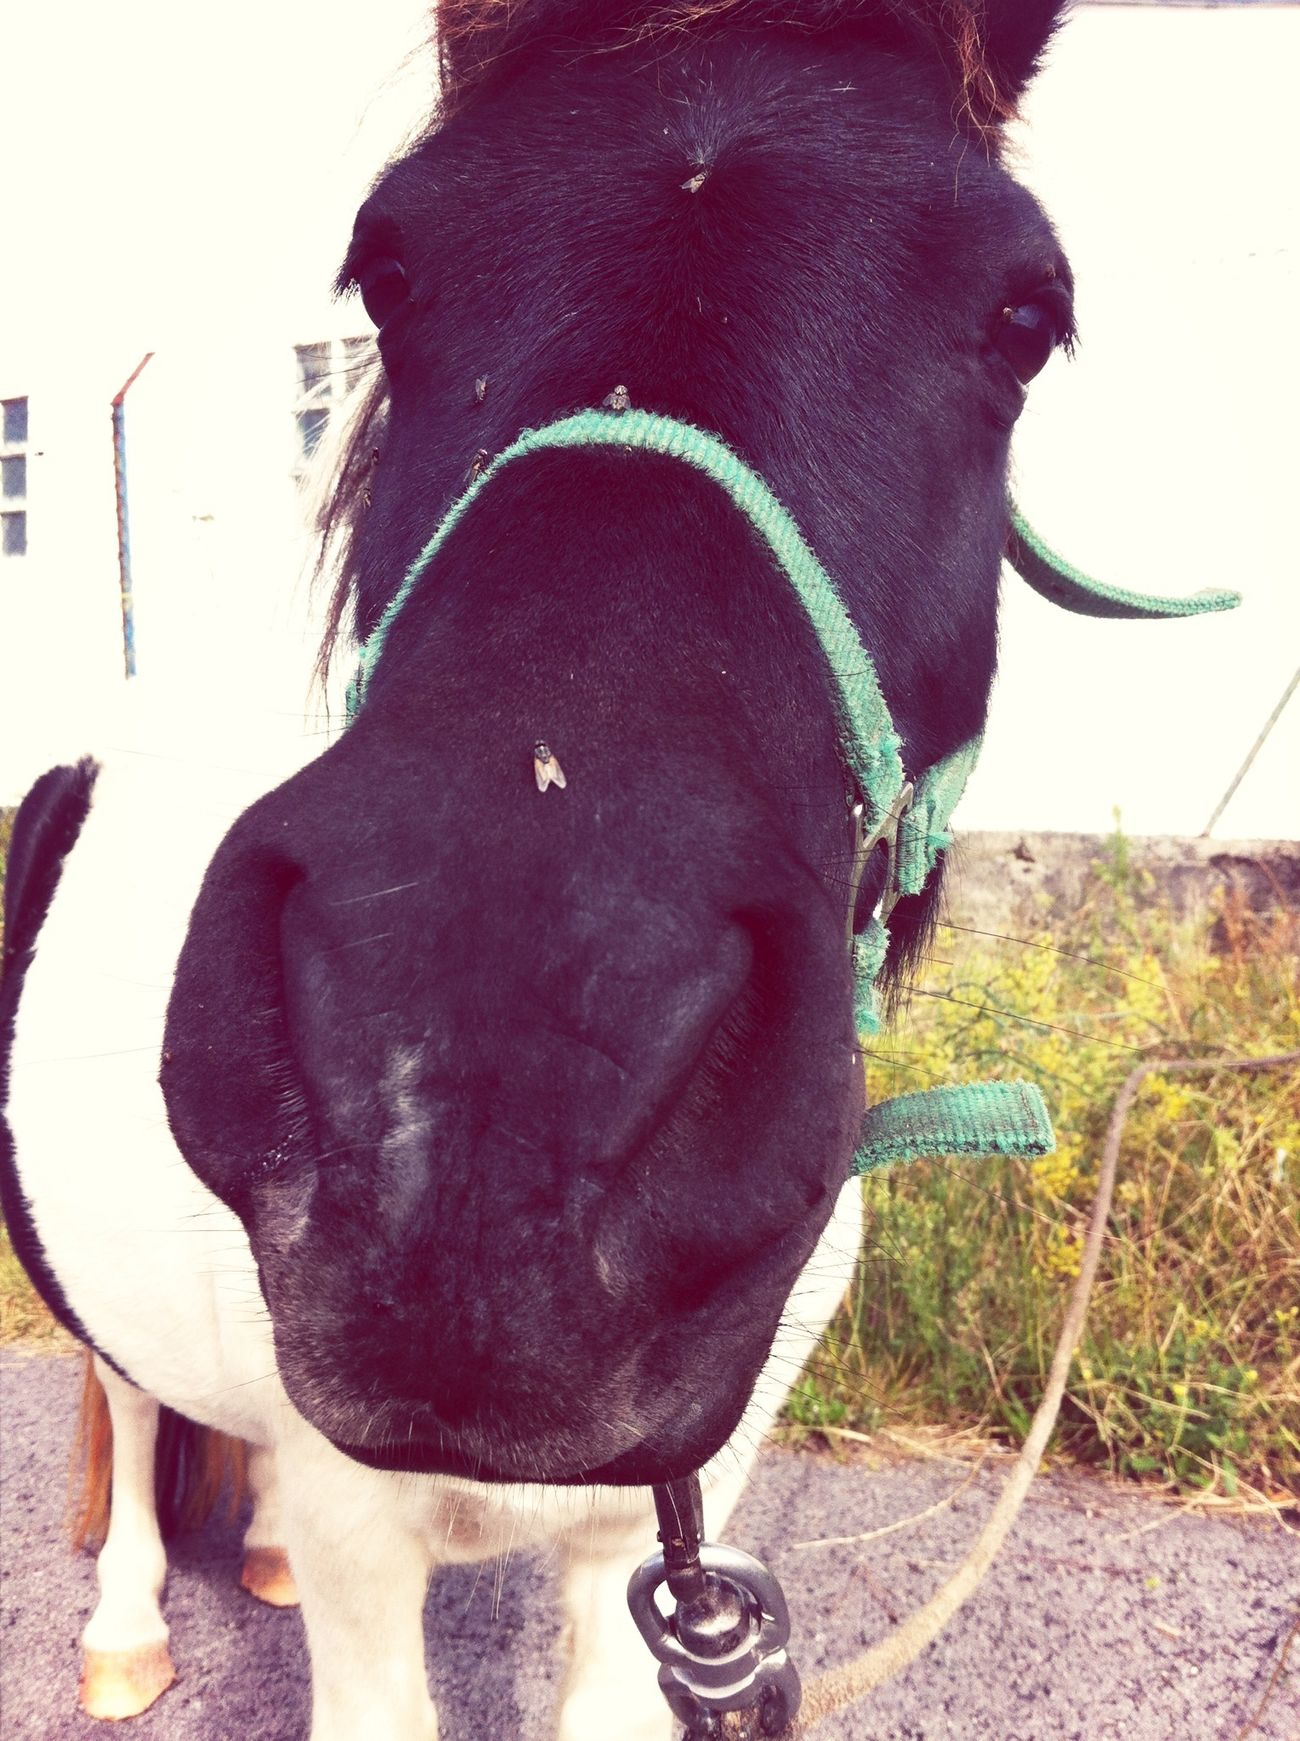 Had a chat with this lovely pony yesterday.